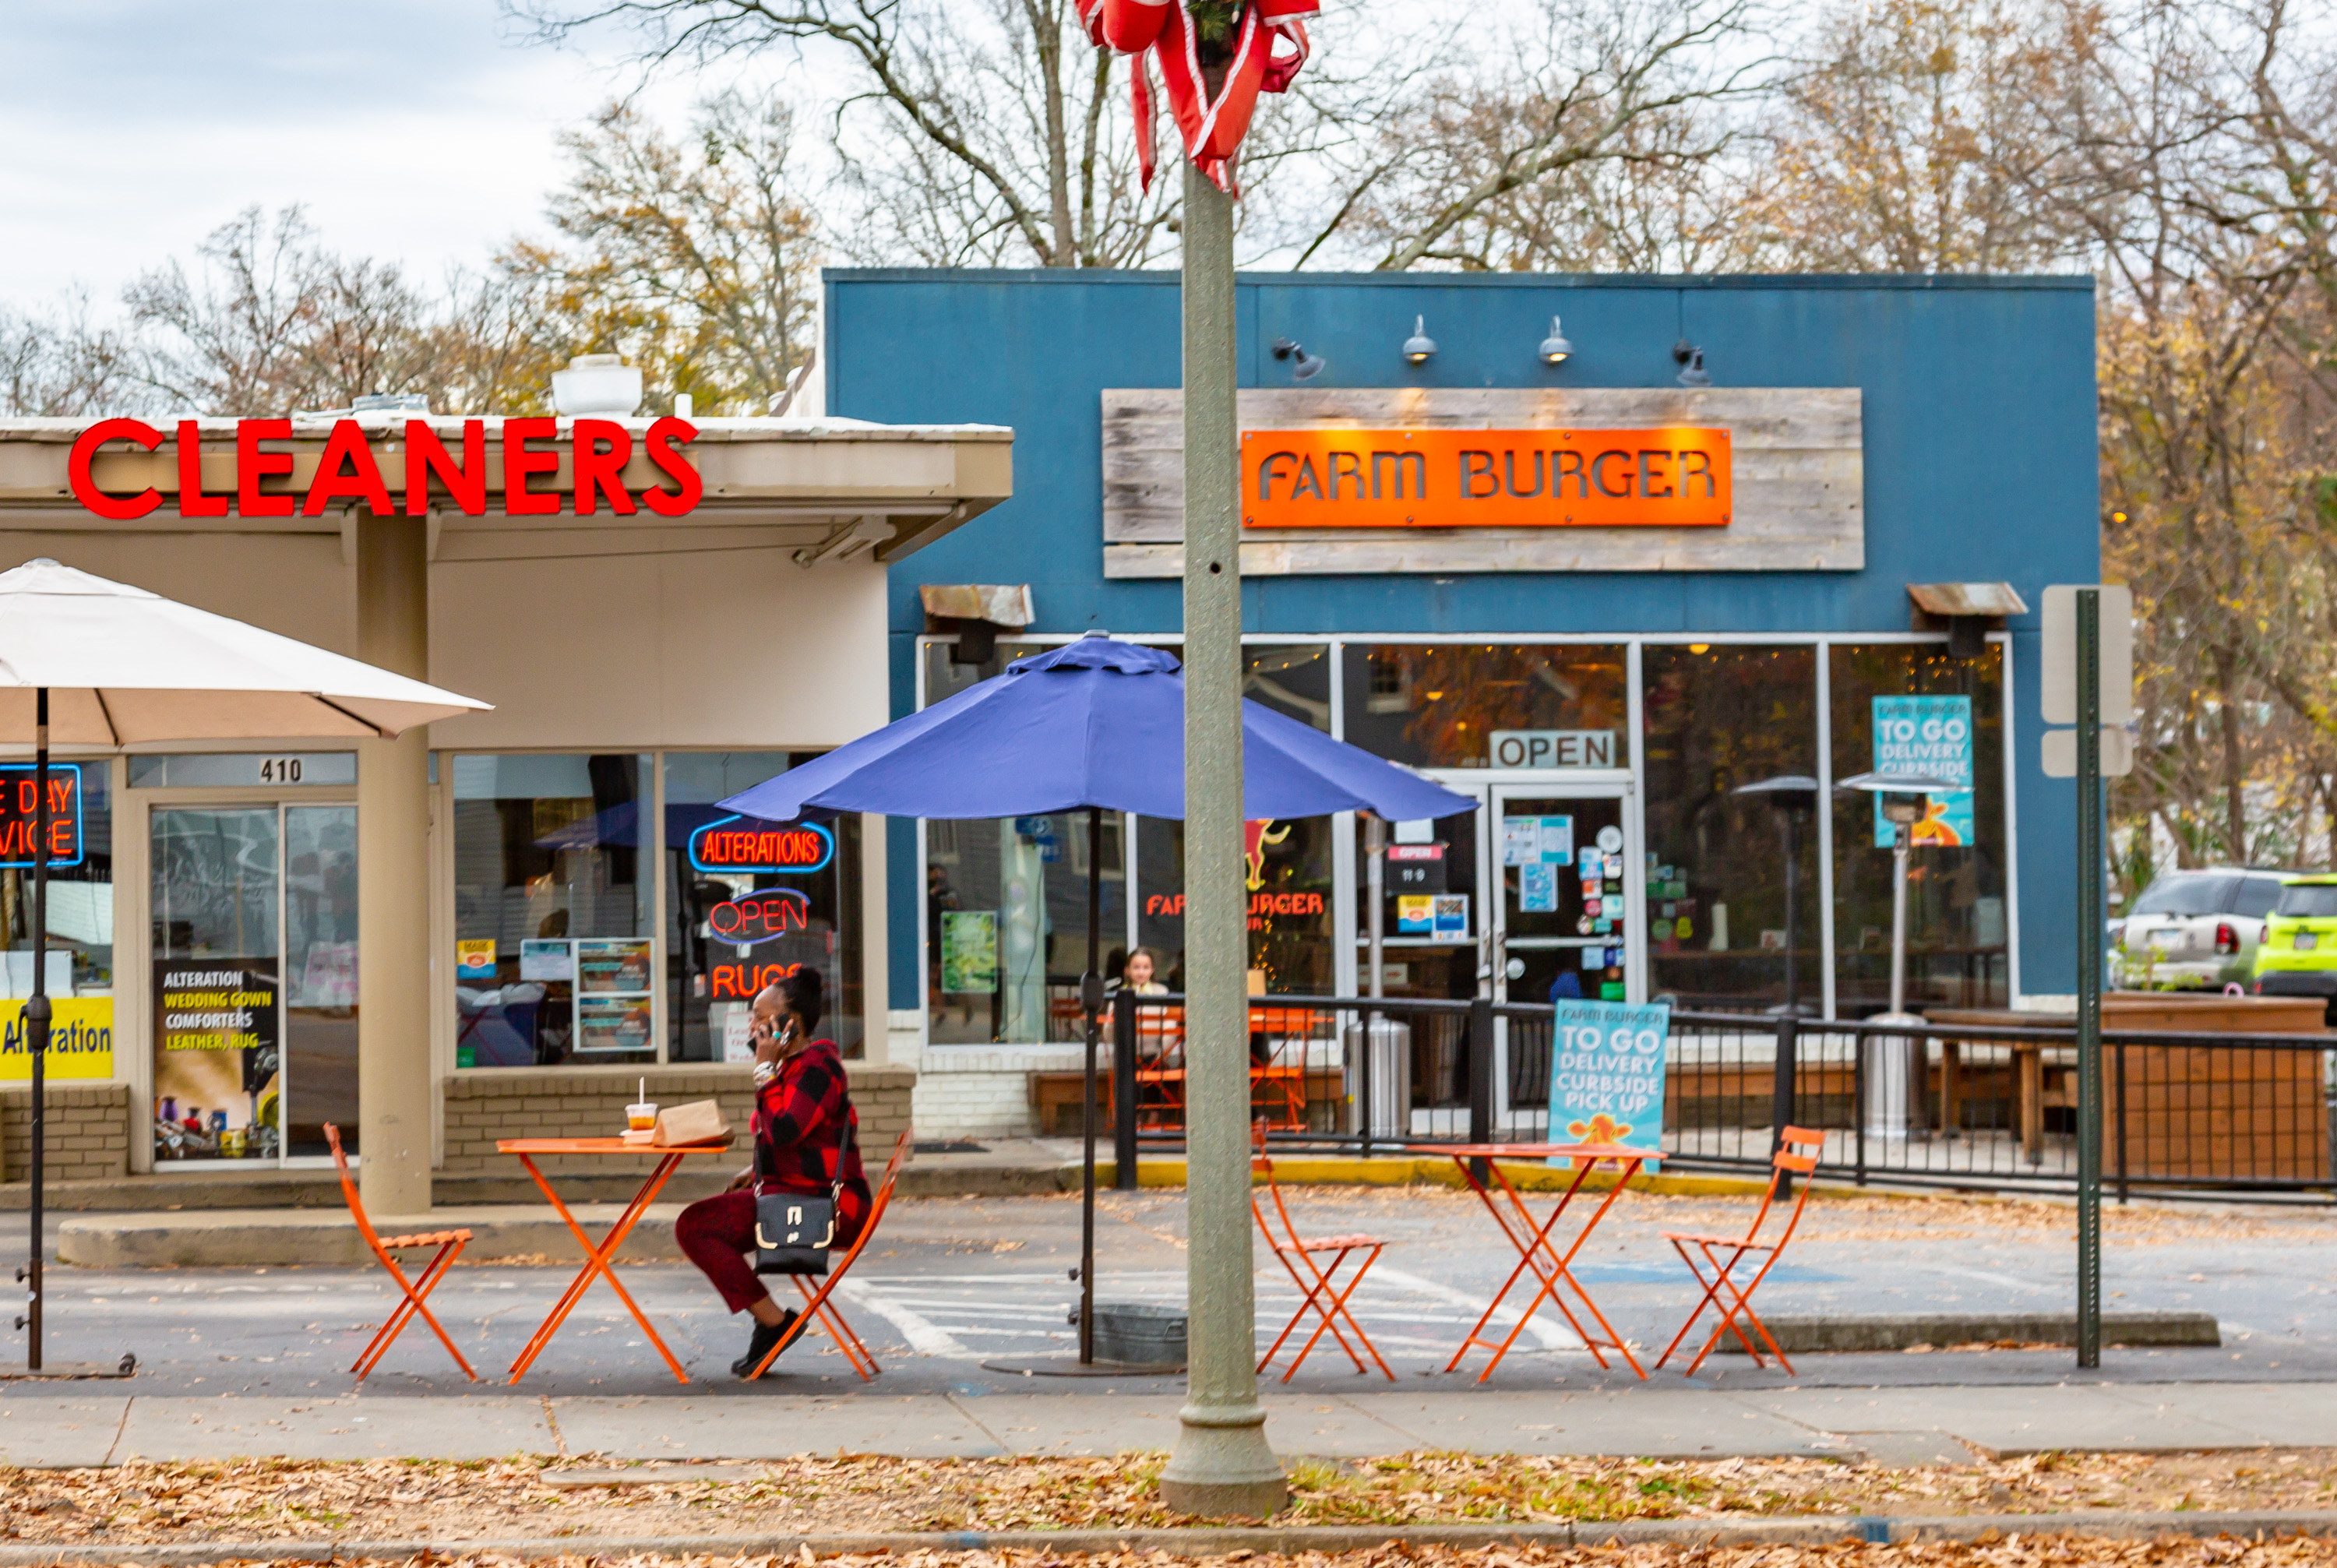 A woman dressed in a red plaid sweater and red leggings with black flats sits at an orange metal table in front of Farm Burger in Decatur, Georgia, on a December 2020 afternoon talking on the phone and eating a burger and fries